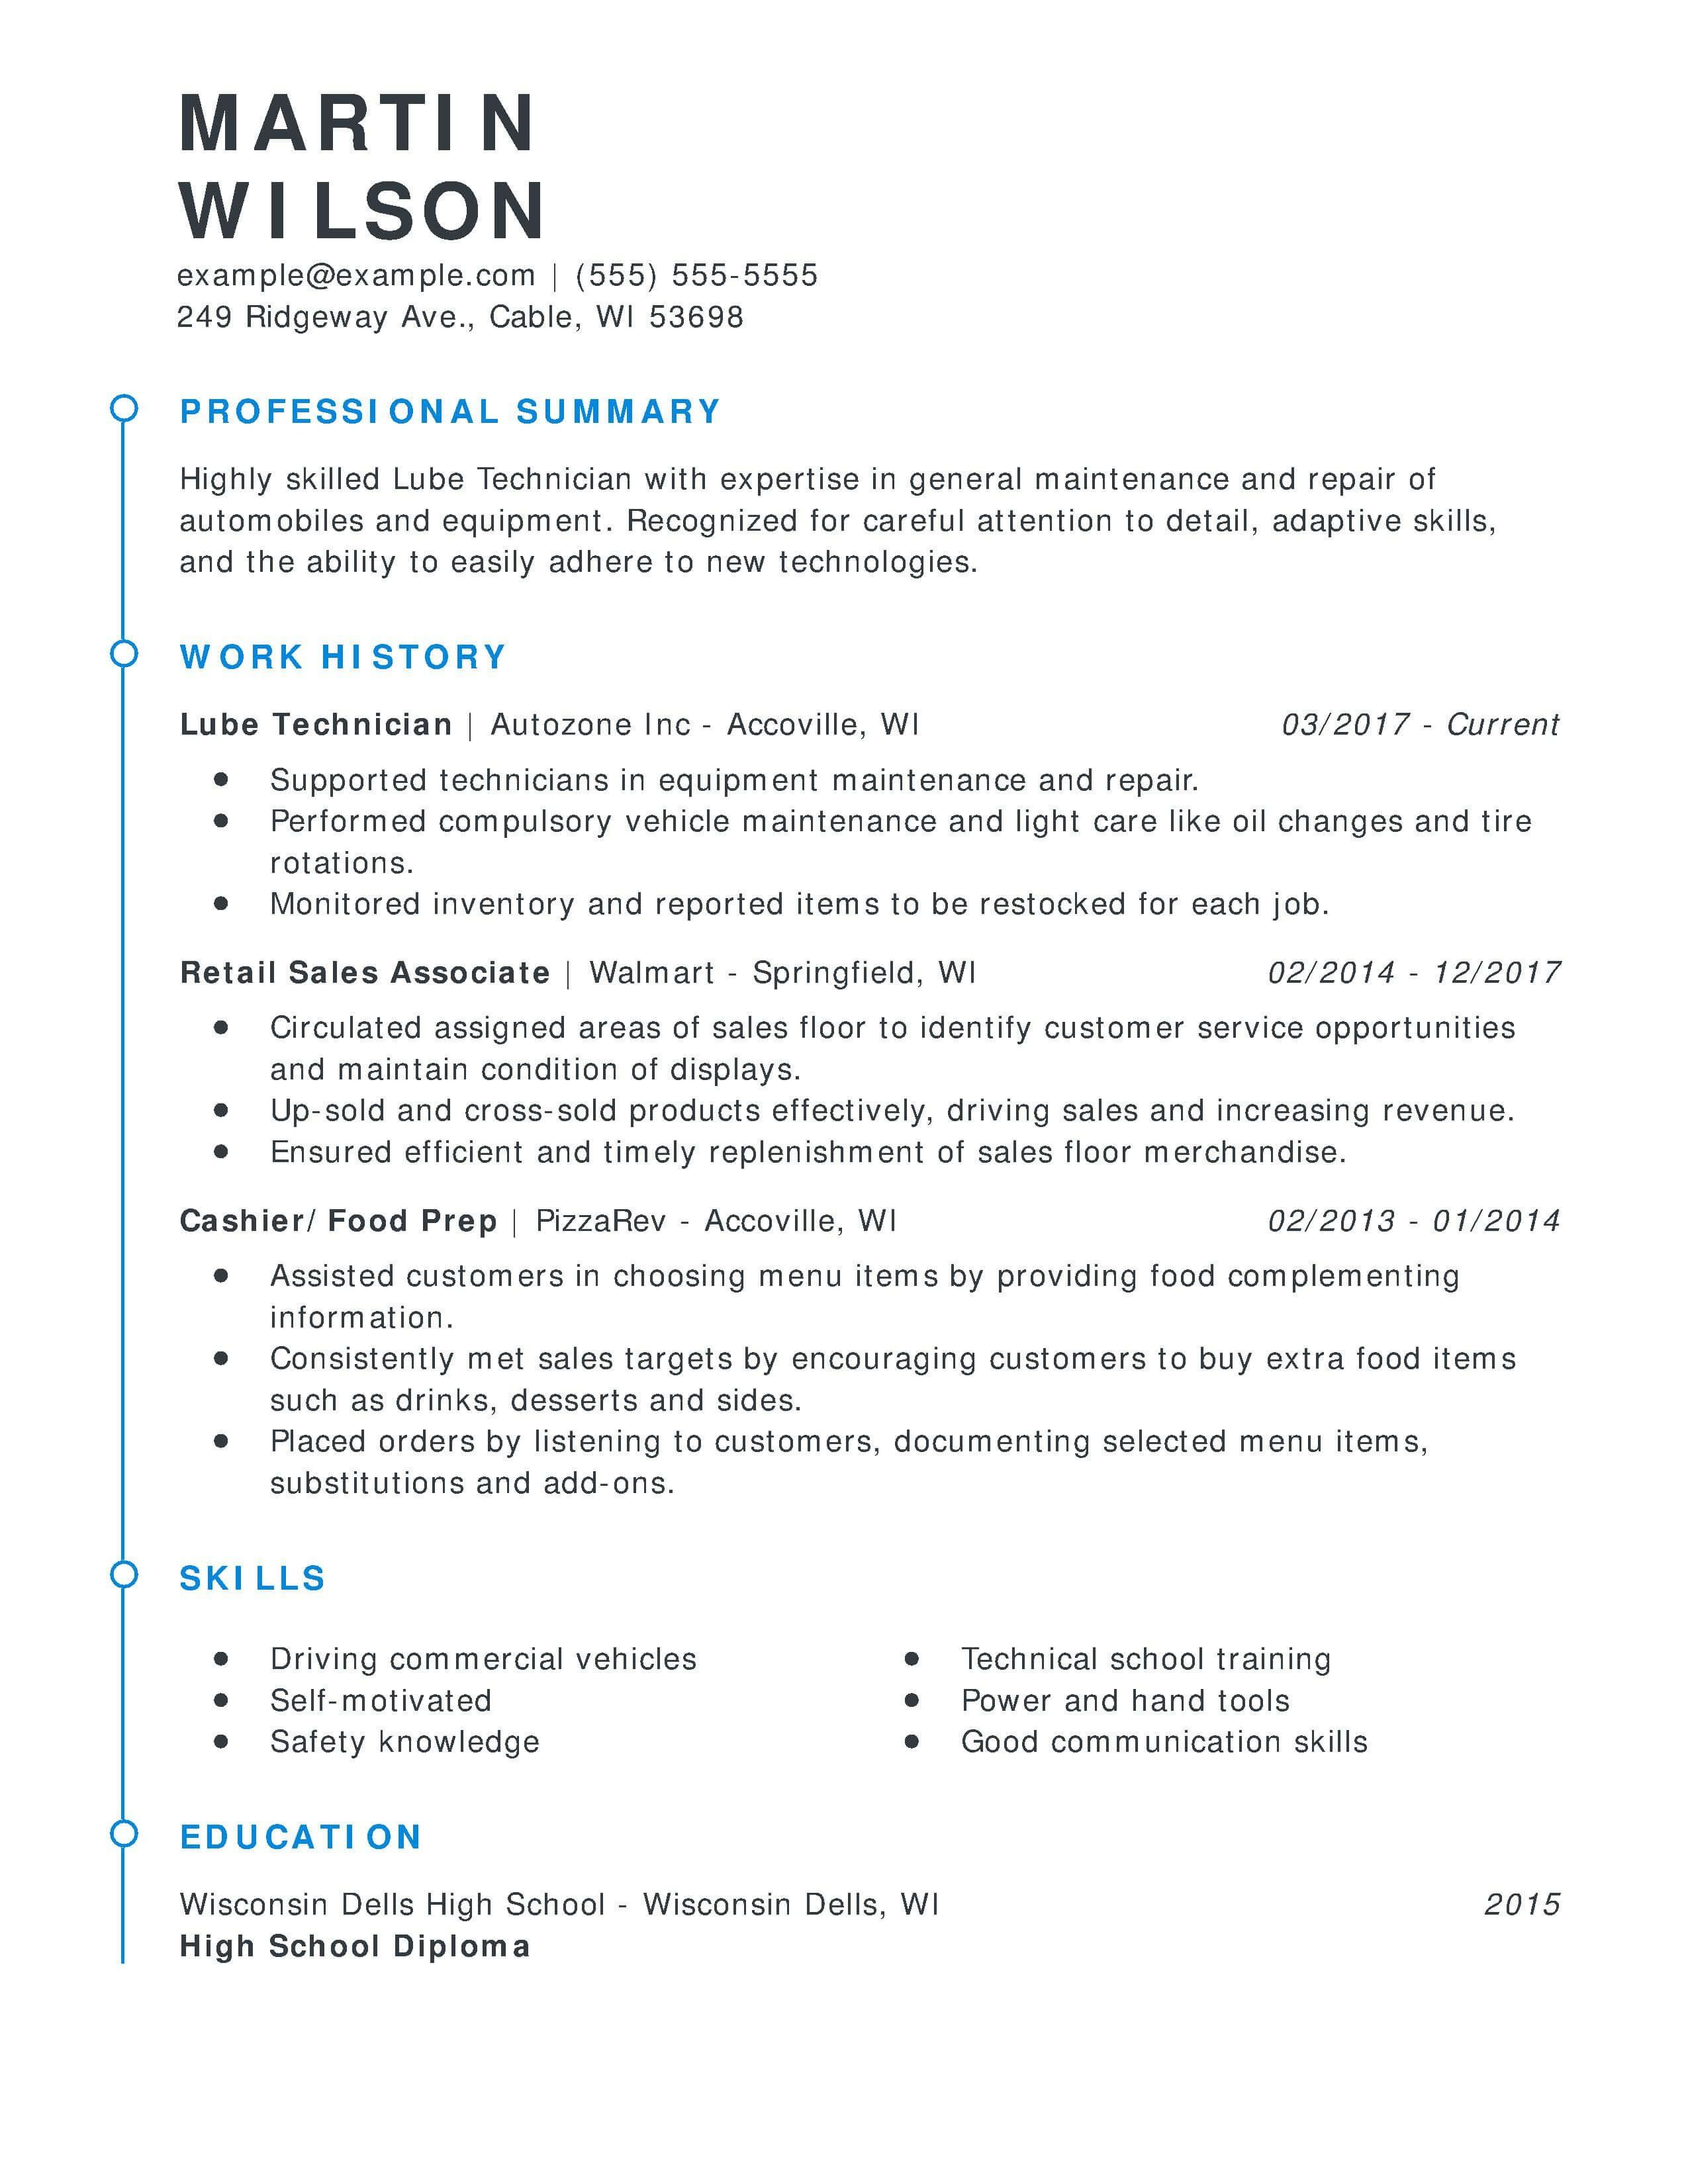 Sales Resume Examples 2017 New 30 Resume Examples View By Industry Job Title Sales Resume Examples Teaching Resume Professional Resume Writing Service